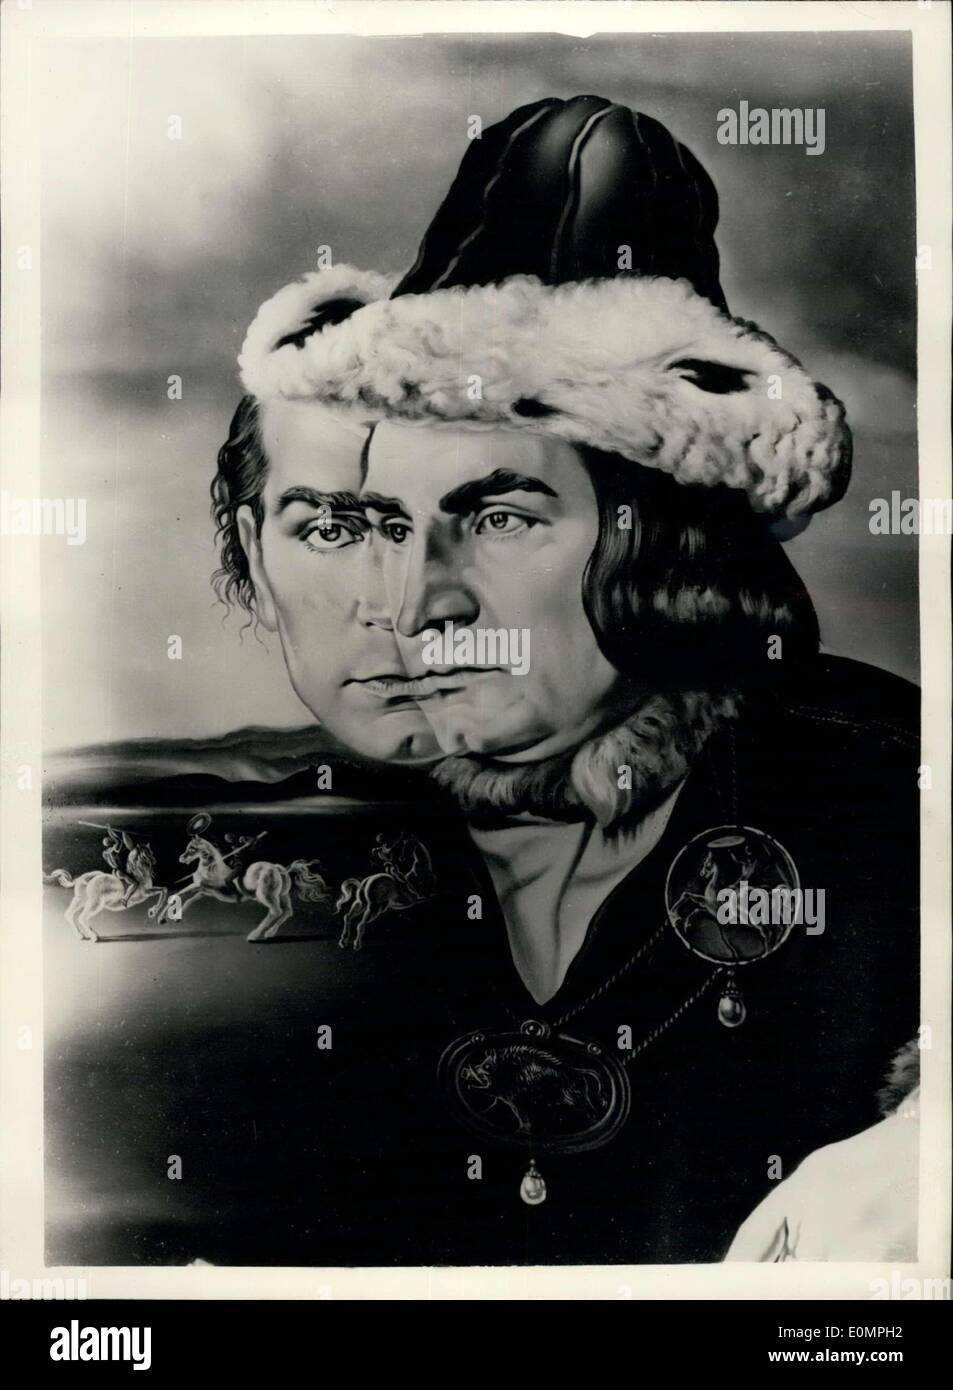 Apr. 10, 1956 - Olivier - By Dali : This is a black and white reproduction of the portrait in oils by Salvador Dall of Sir Laurence Olivier in his role of Richard III, the Laurence Olivier London film. The portrait was commissioned by Mr. Robert Dowling of new york, and preliminary sketches were made during the filming of this production. The portrait was finally completed Salvador Dali's residence to Spain. Stock Photo